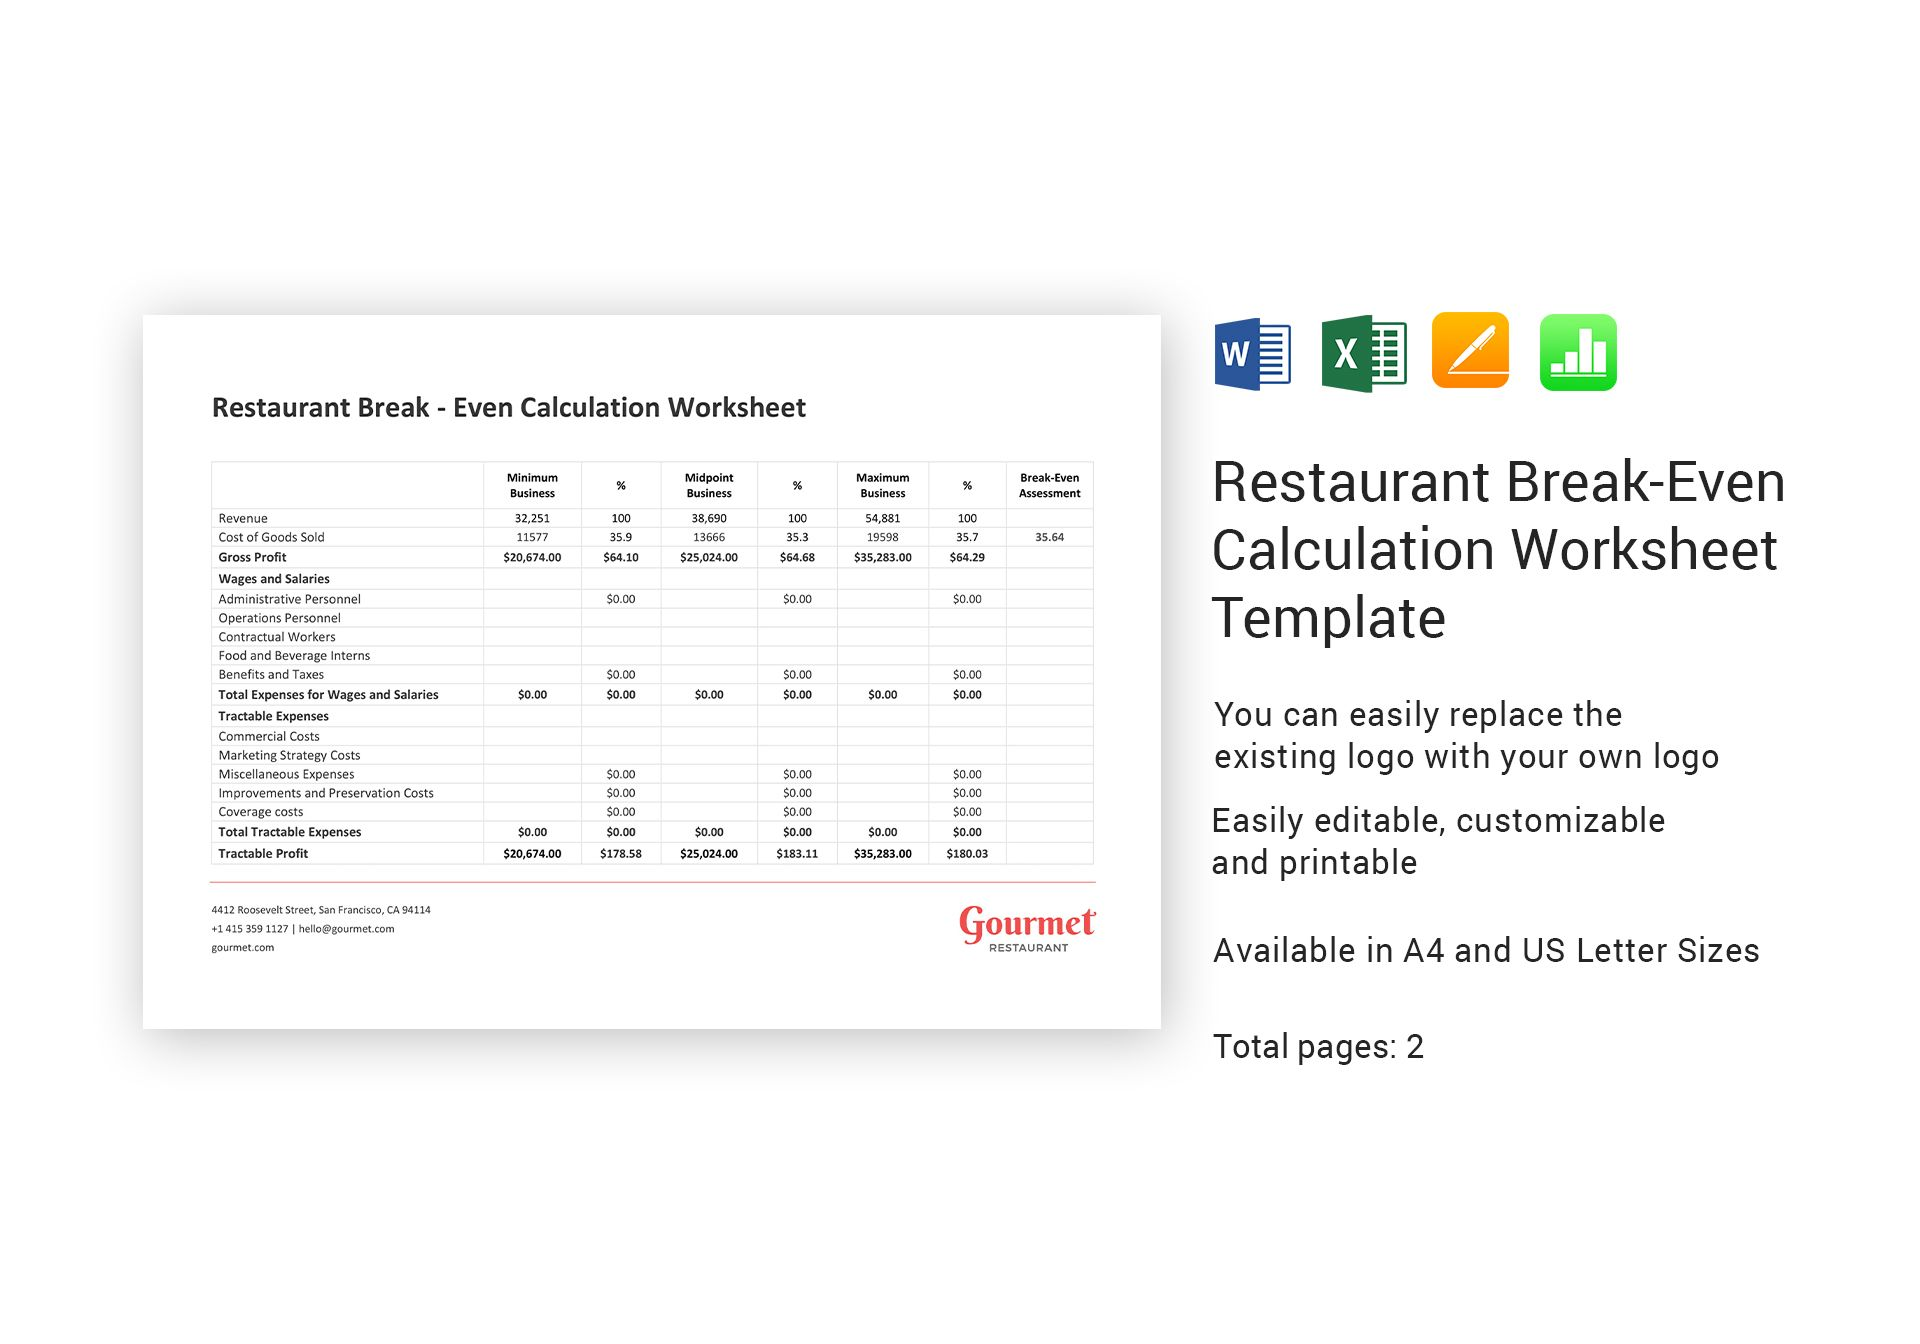 Restaurant Break Even Calculation Worksheet Template In